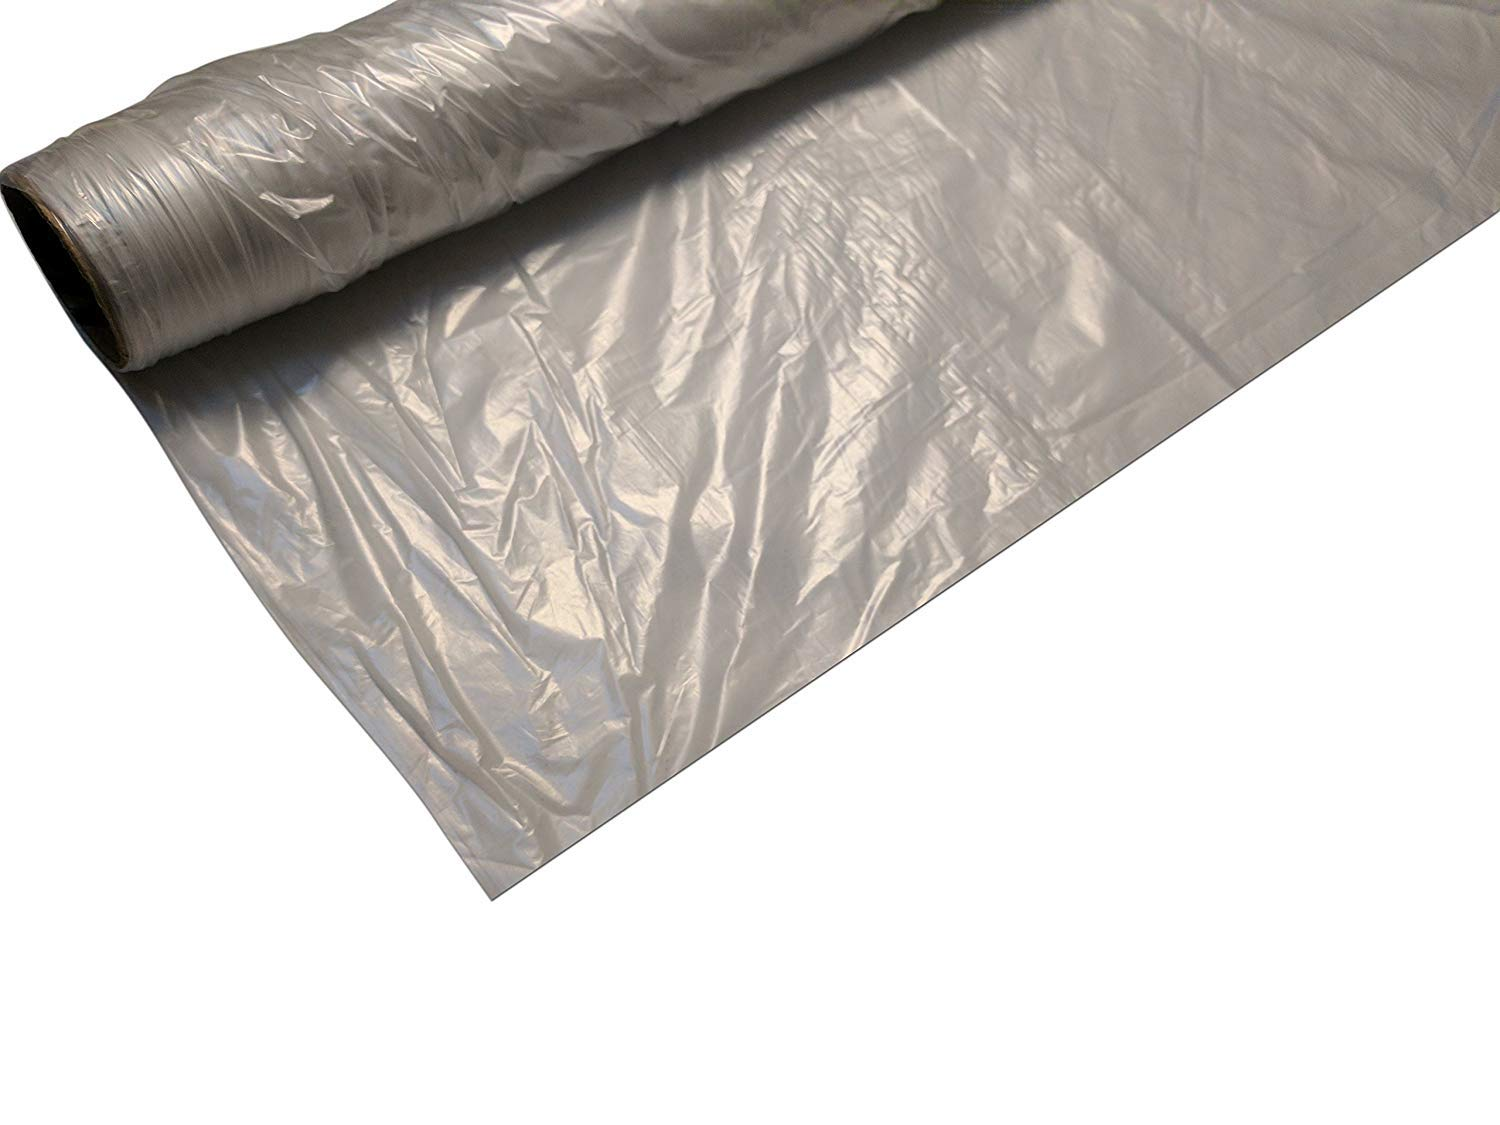 (25 yards) 54 inch Cushion Wrap Silk Film: Easily Wrap and Install Foam into Cushion Cover